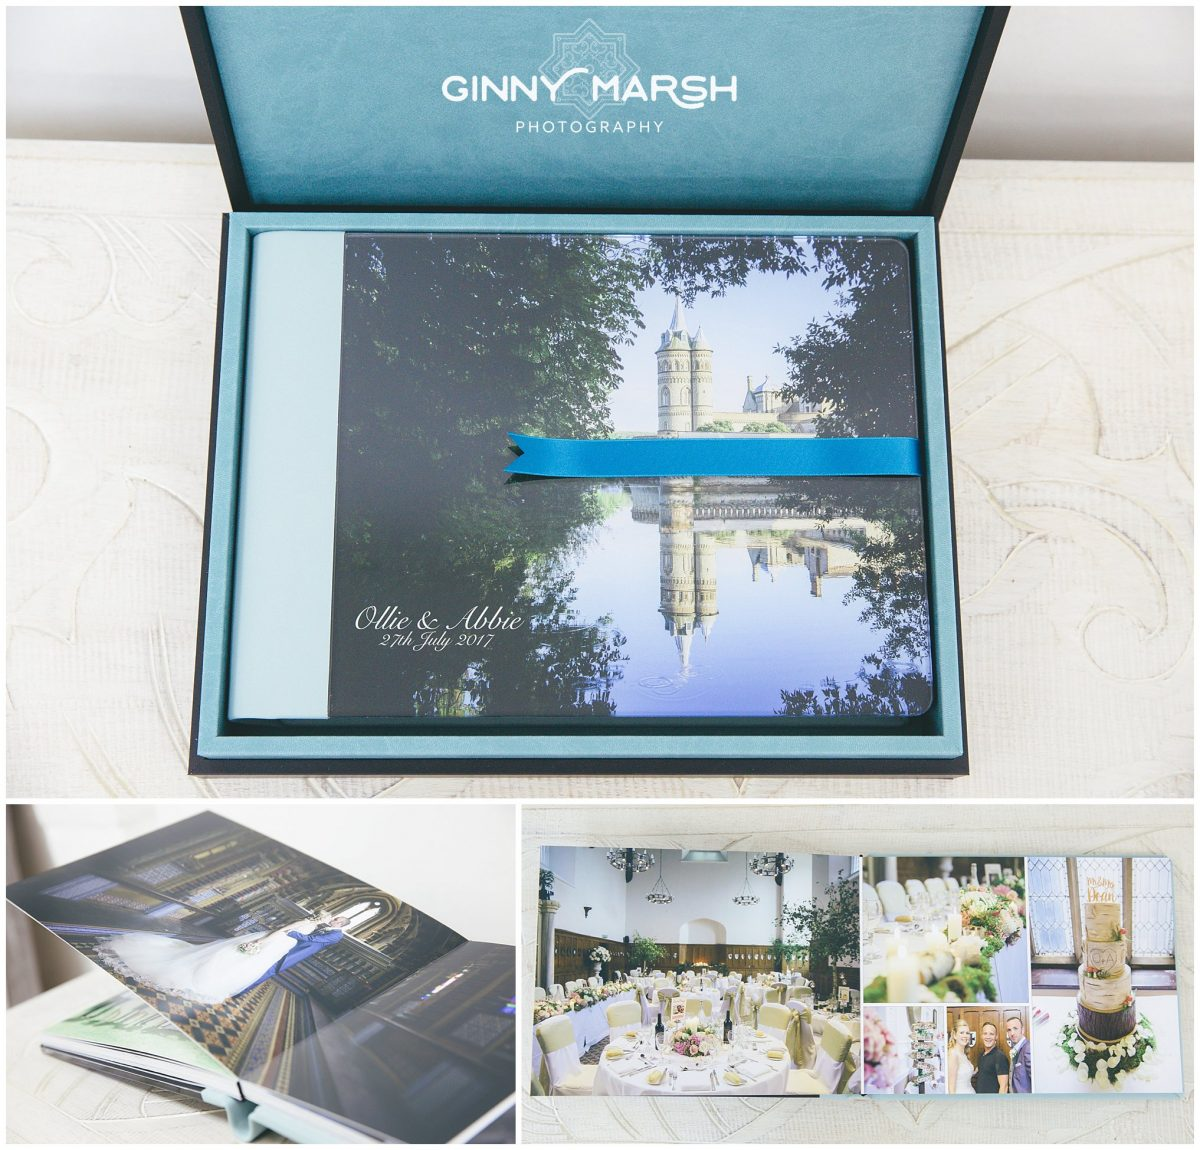 Surrey wedding photographer | Wedding Albums | Ginny Marsh Photography